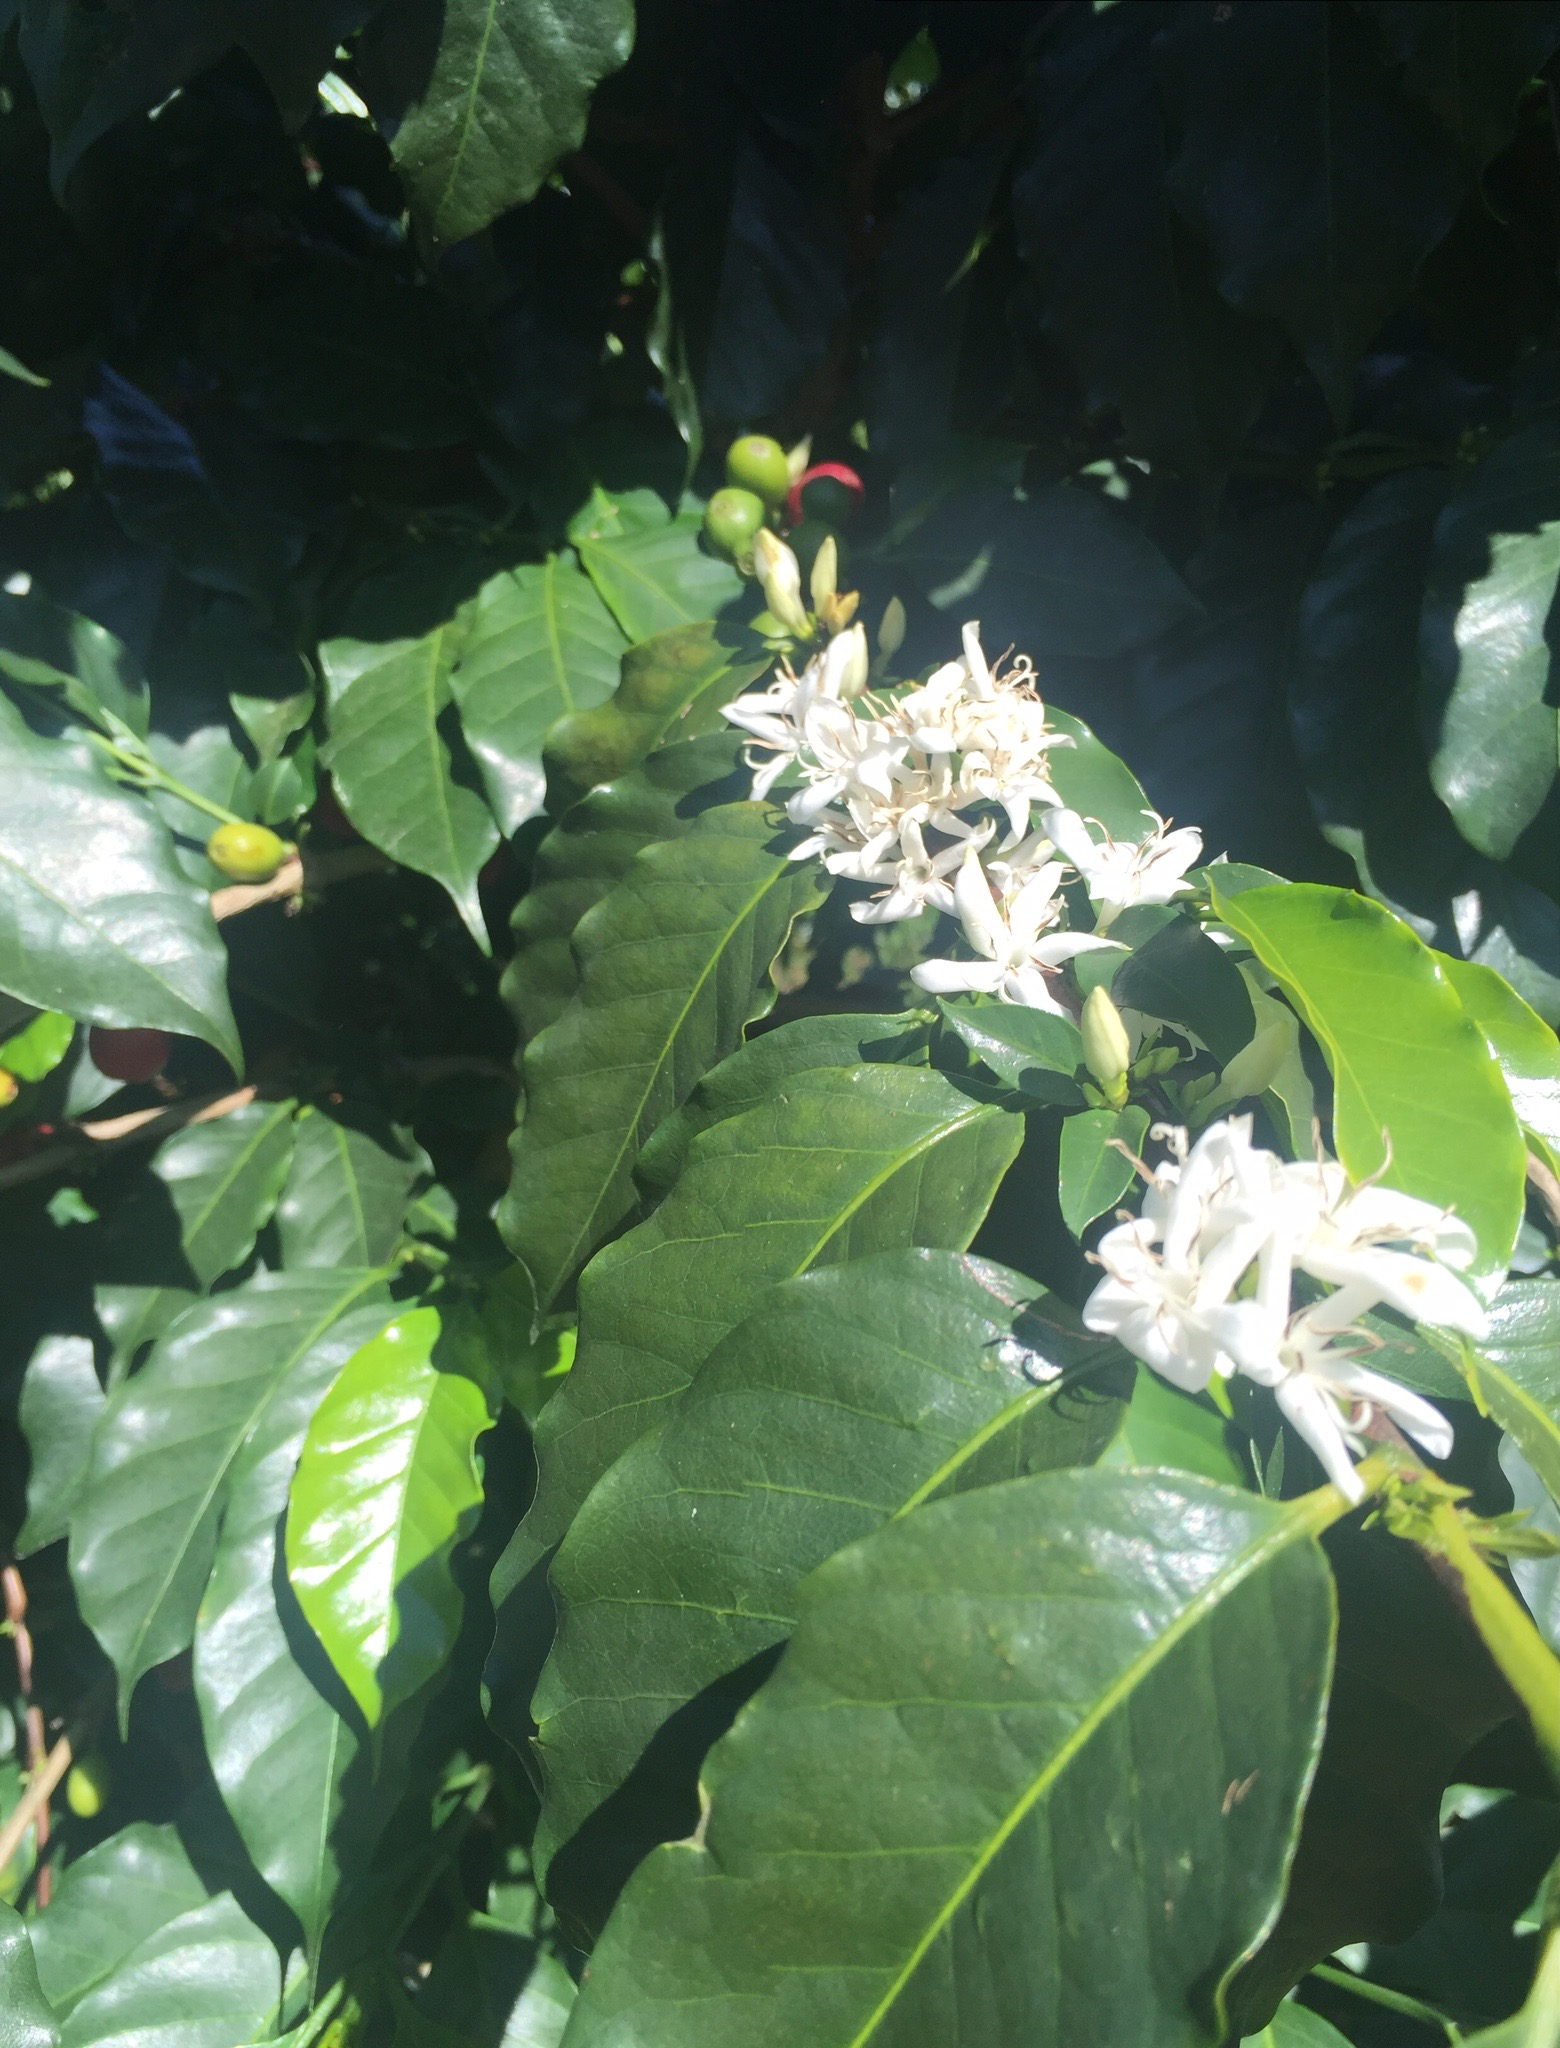 Flowering coffee plant